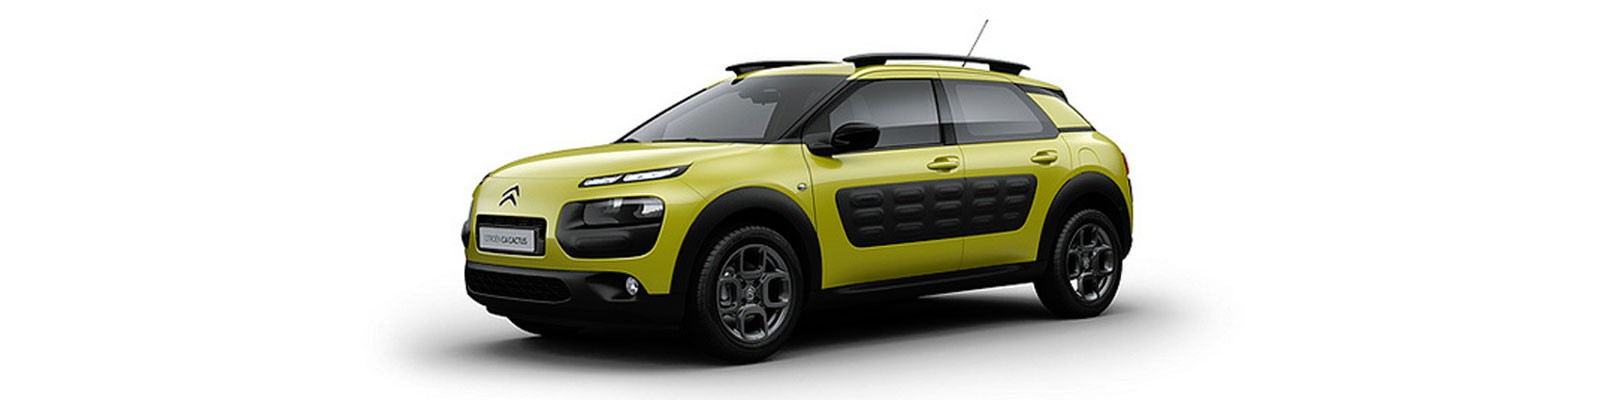 citroen c4 cactus vehicle accessories 4x4 accessories tyres. Black Bedroom Furniture Sets. Home Design Ideas